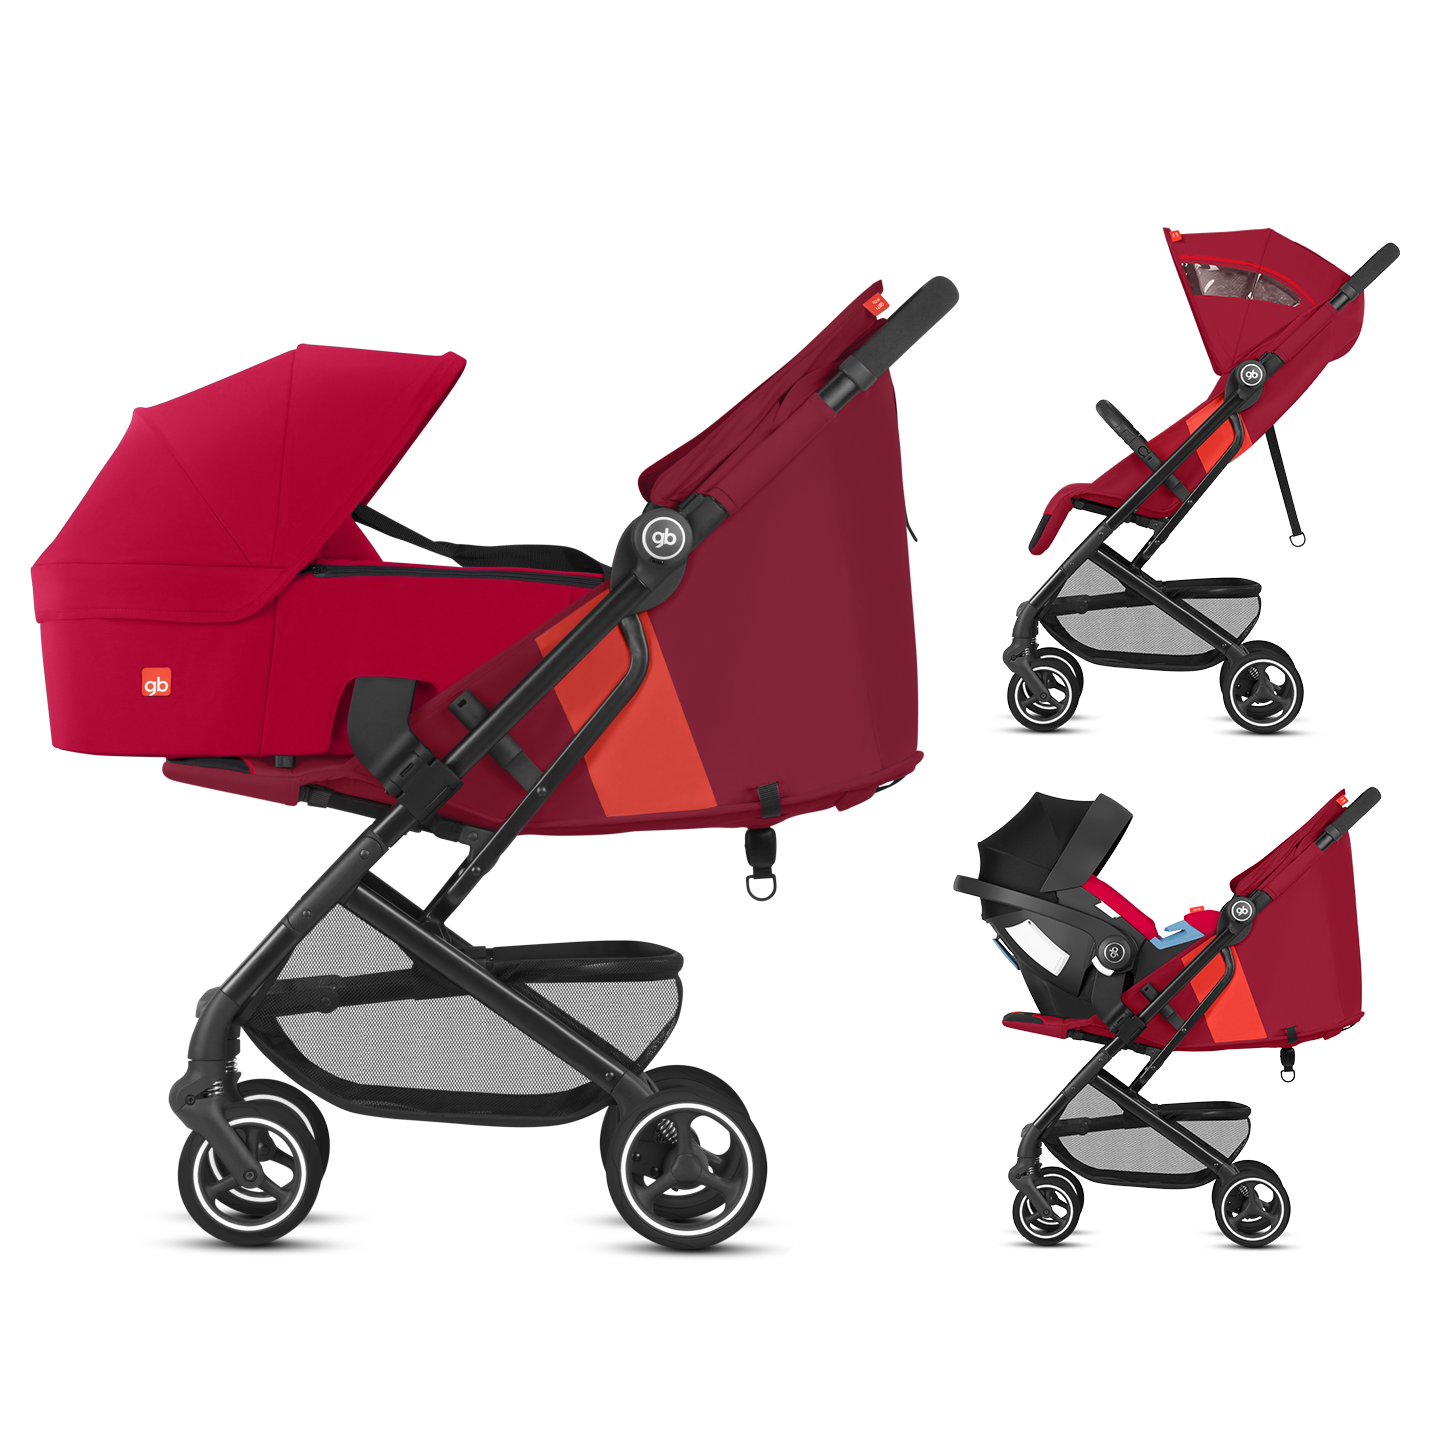 https://images.gb-online.com/q_85,dn_72,h_1440/gbo/product-Qbit_-All-City-Rose-Red-3in1-travel-system-8724-8720-8589_v7xbo3